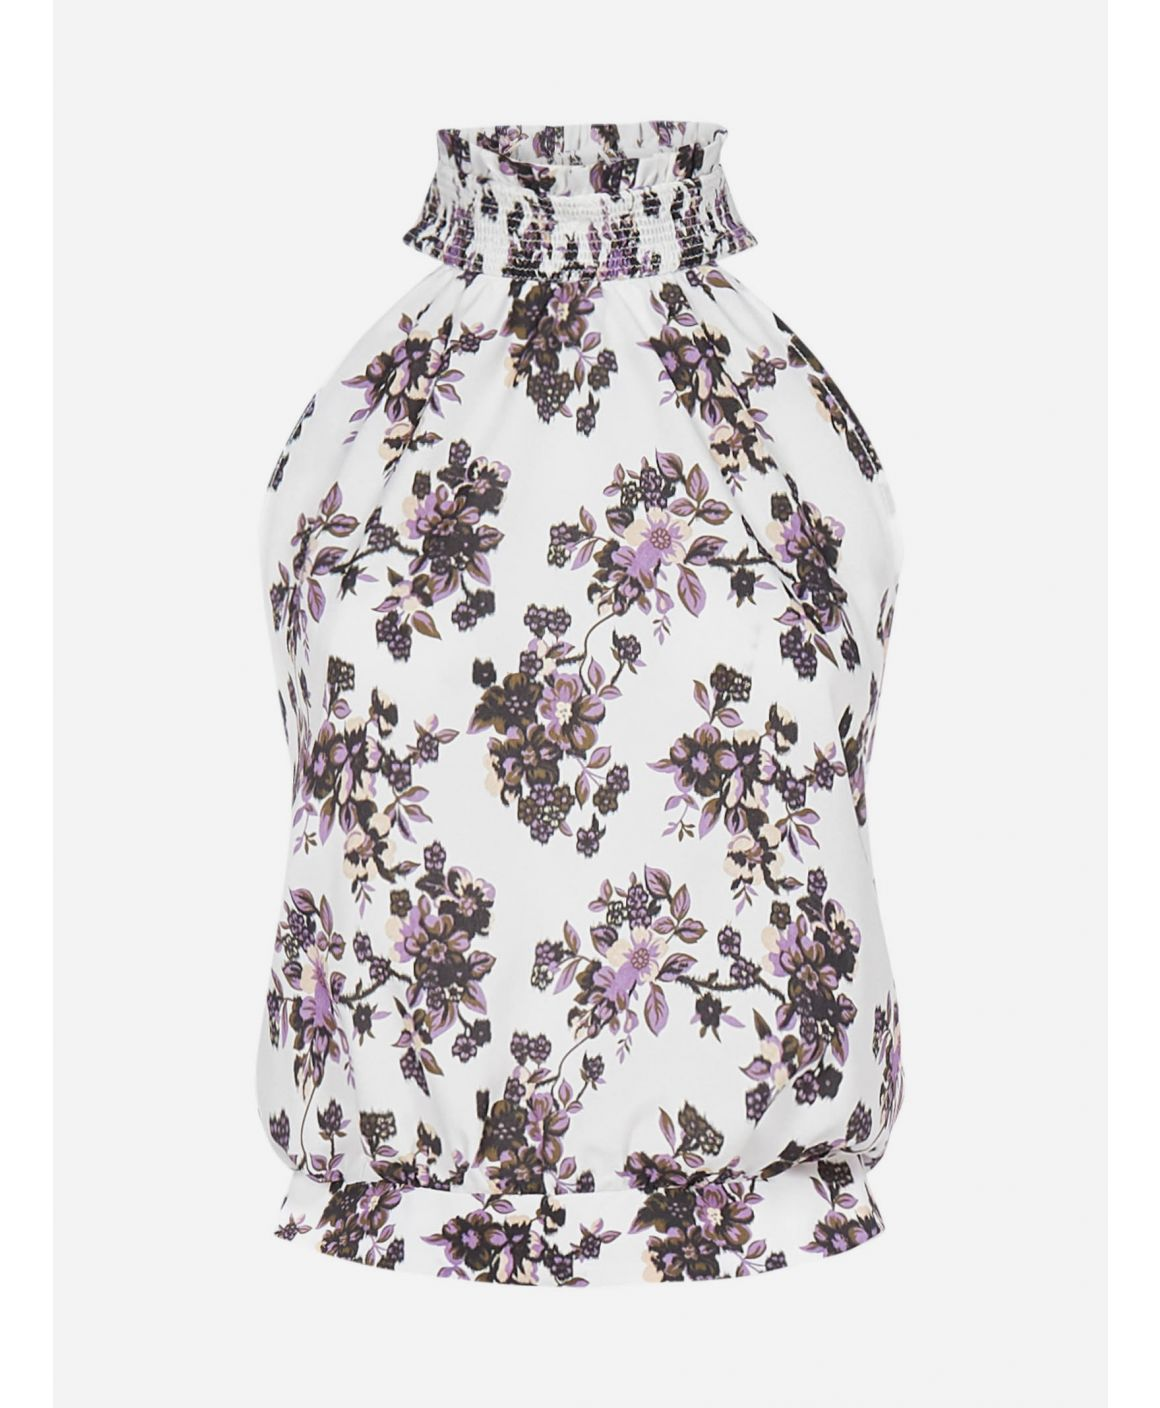 Snello 1 floral print top